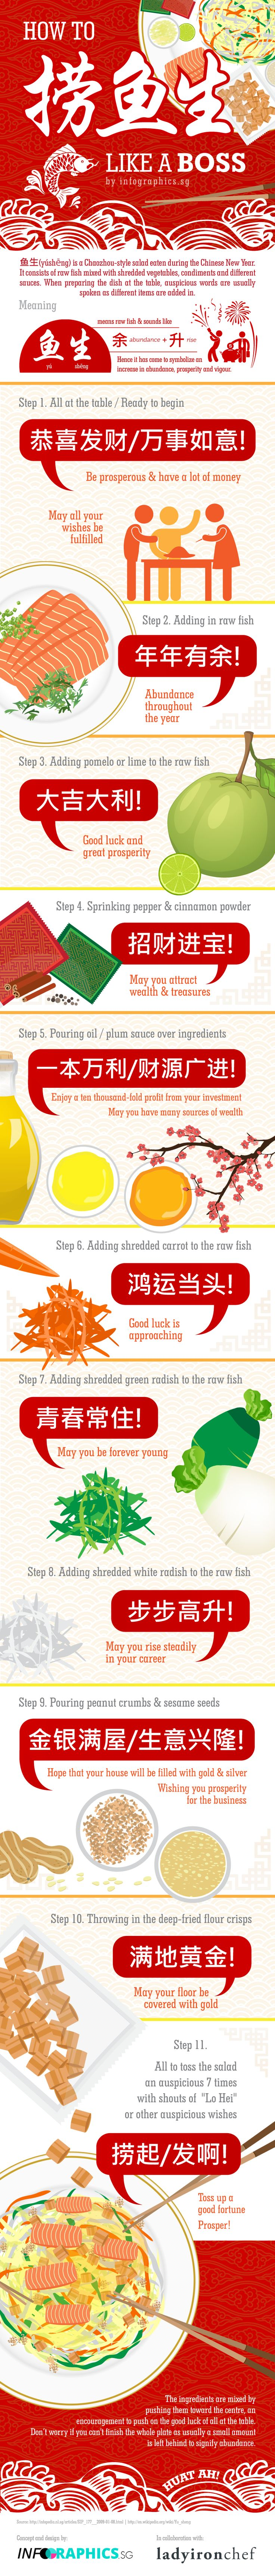 How to eat Yu Sheng - traditional style salad eaten during Chinese New Year